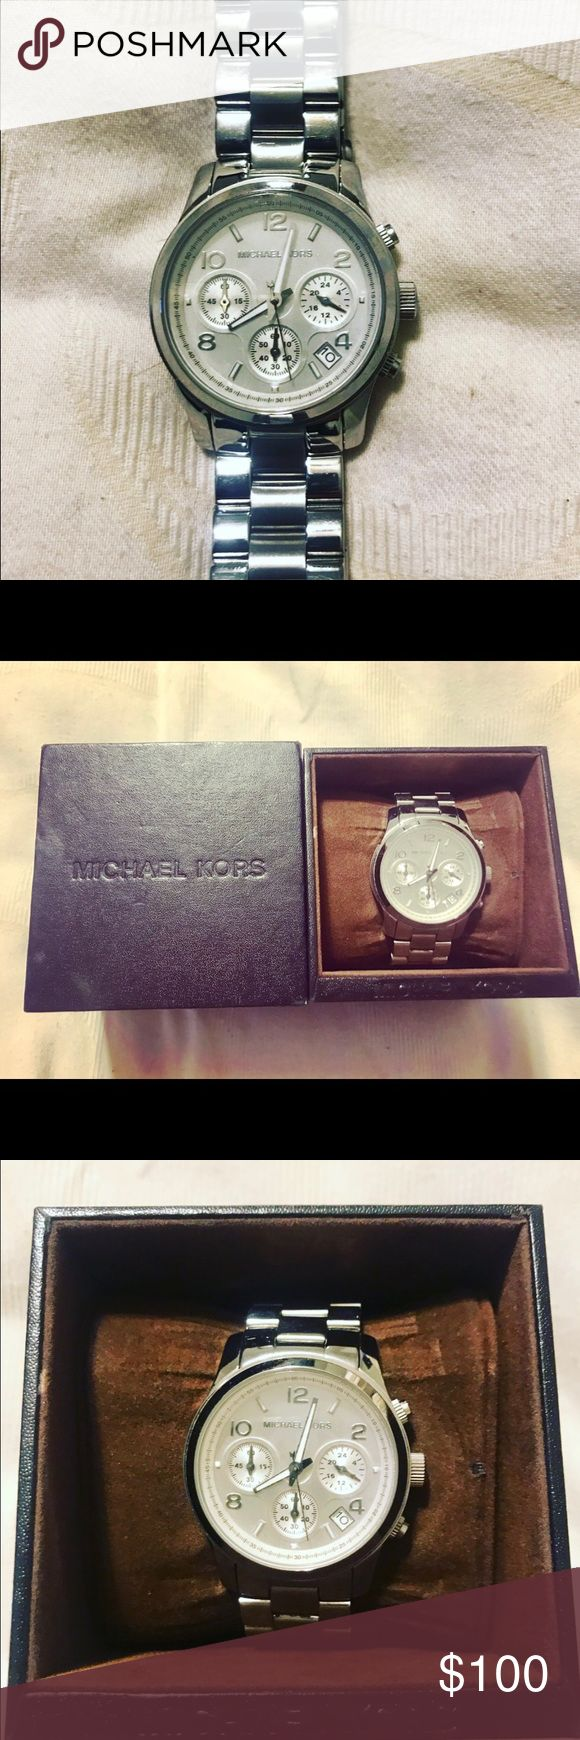 Michael Kors MK5076 Silver Chronograph Watch Used Michael Kors MK5076 Silver Chronograph Watch. PRICE IS FIRM.  Normal wear and will need a new battery.  Comes with box and extra links. Michael Kors Accessories Watches